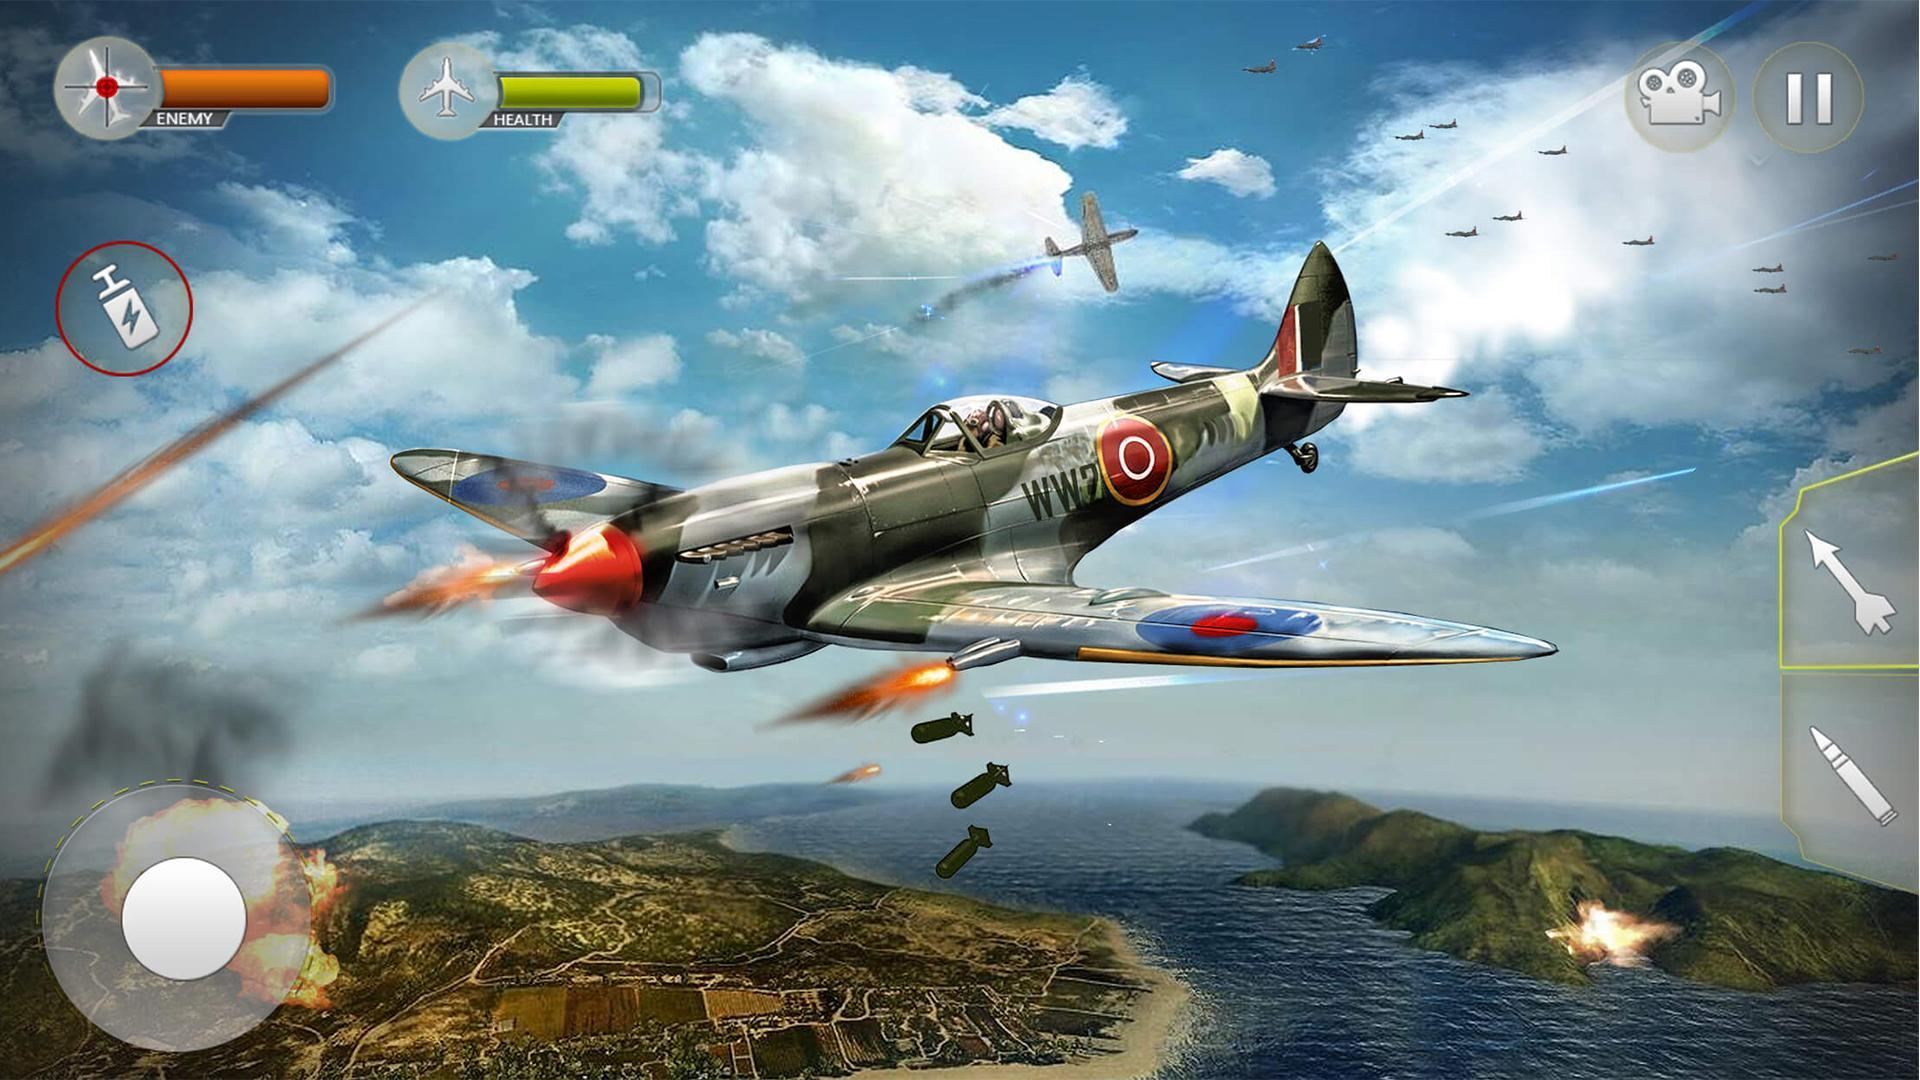 Airplane Fighting War Air Shooting Games for Android - APK